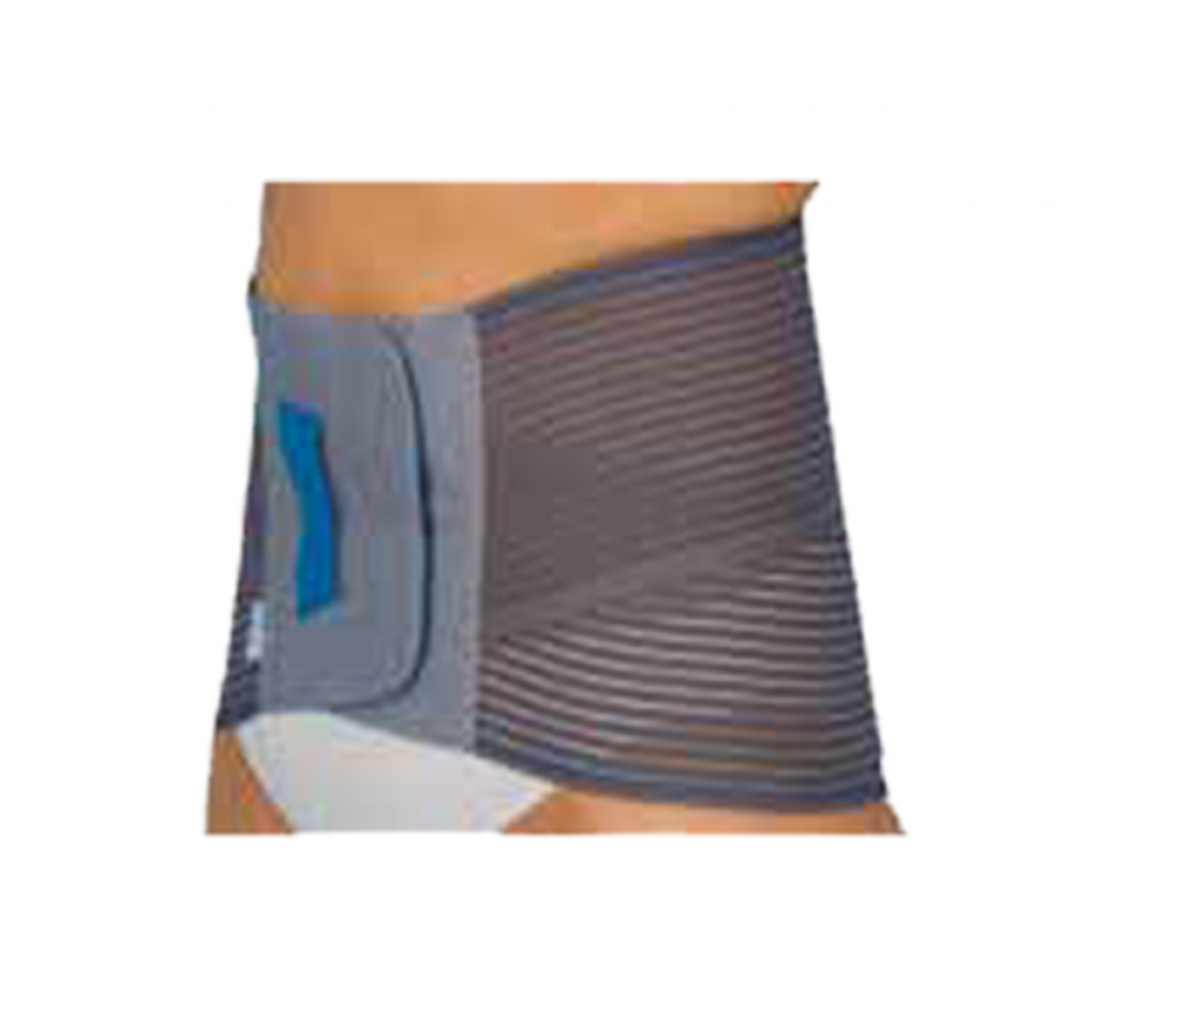 ACTION SEMIRIGID BACK SUPPORT - XS 980G